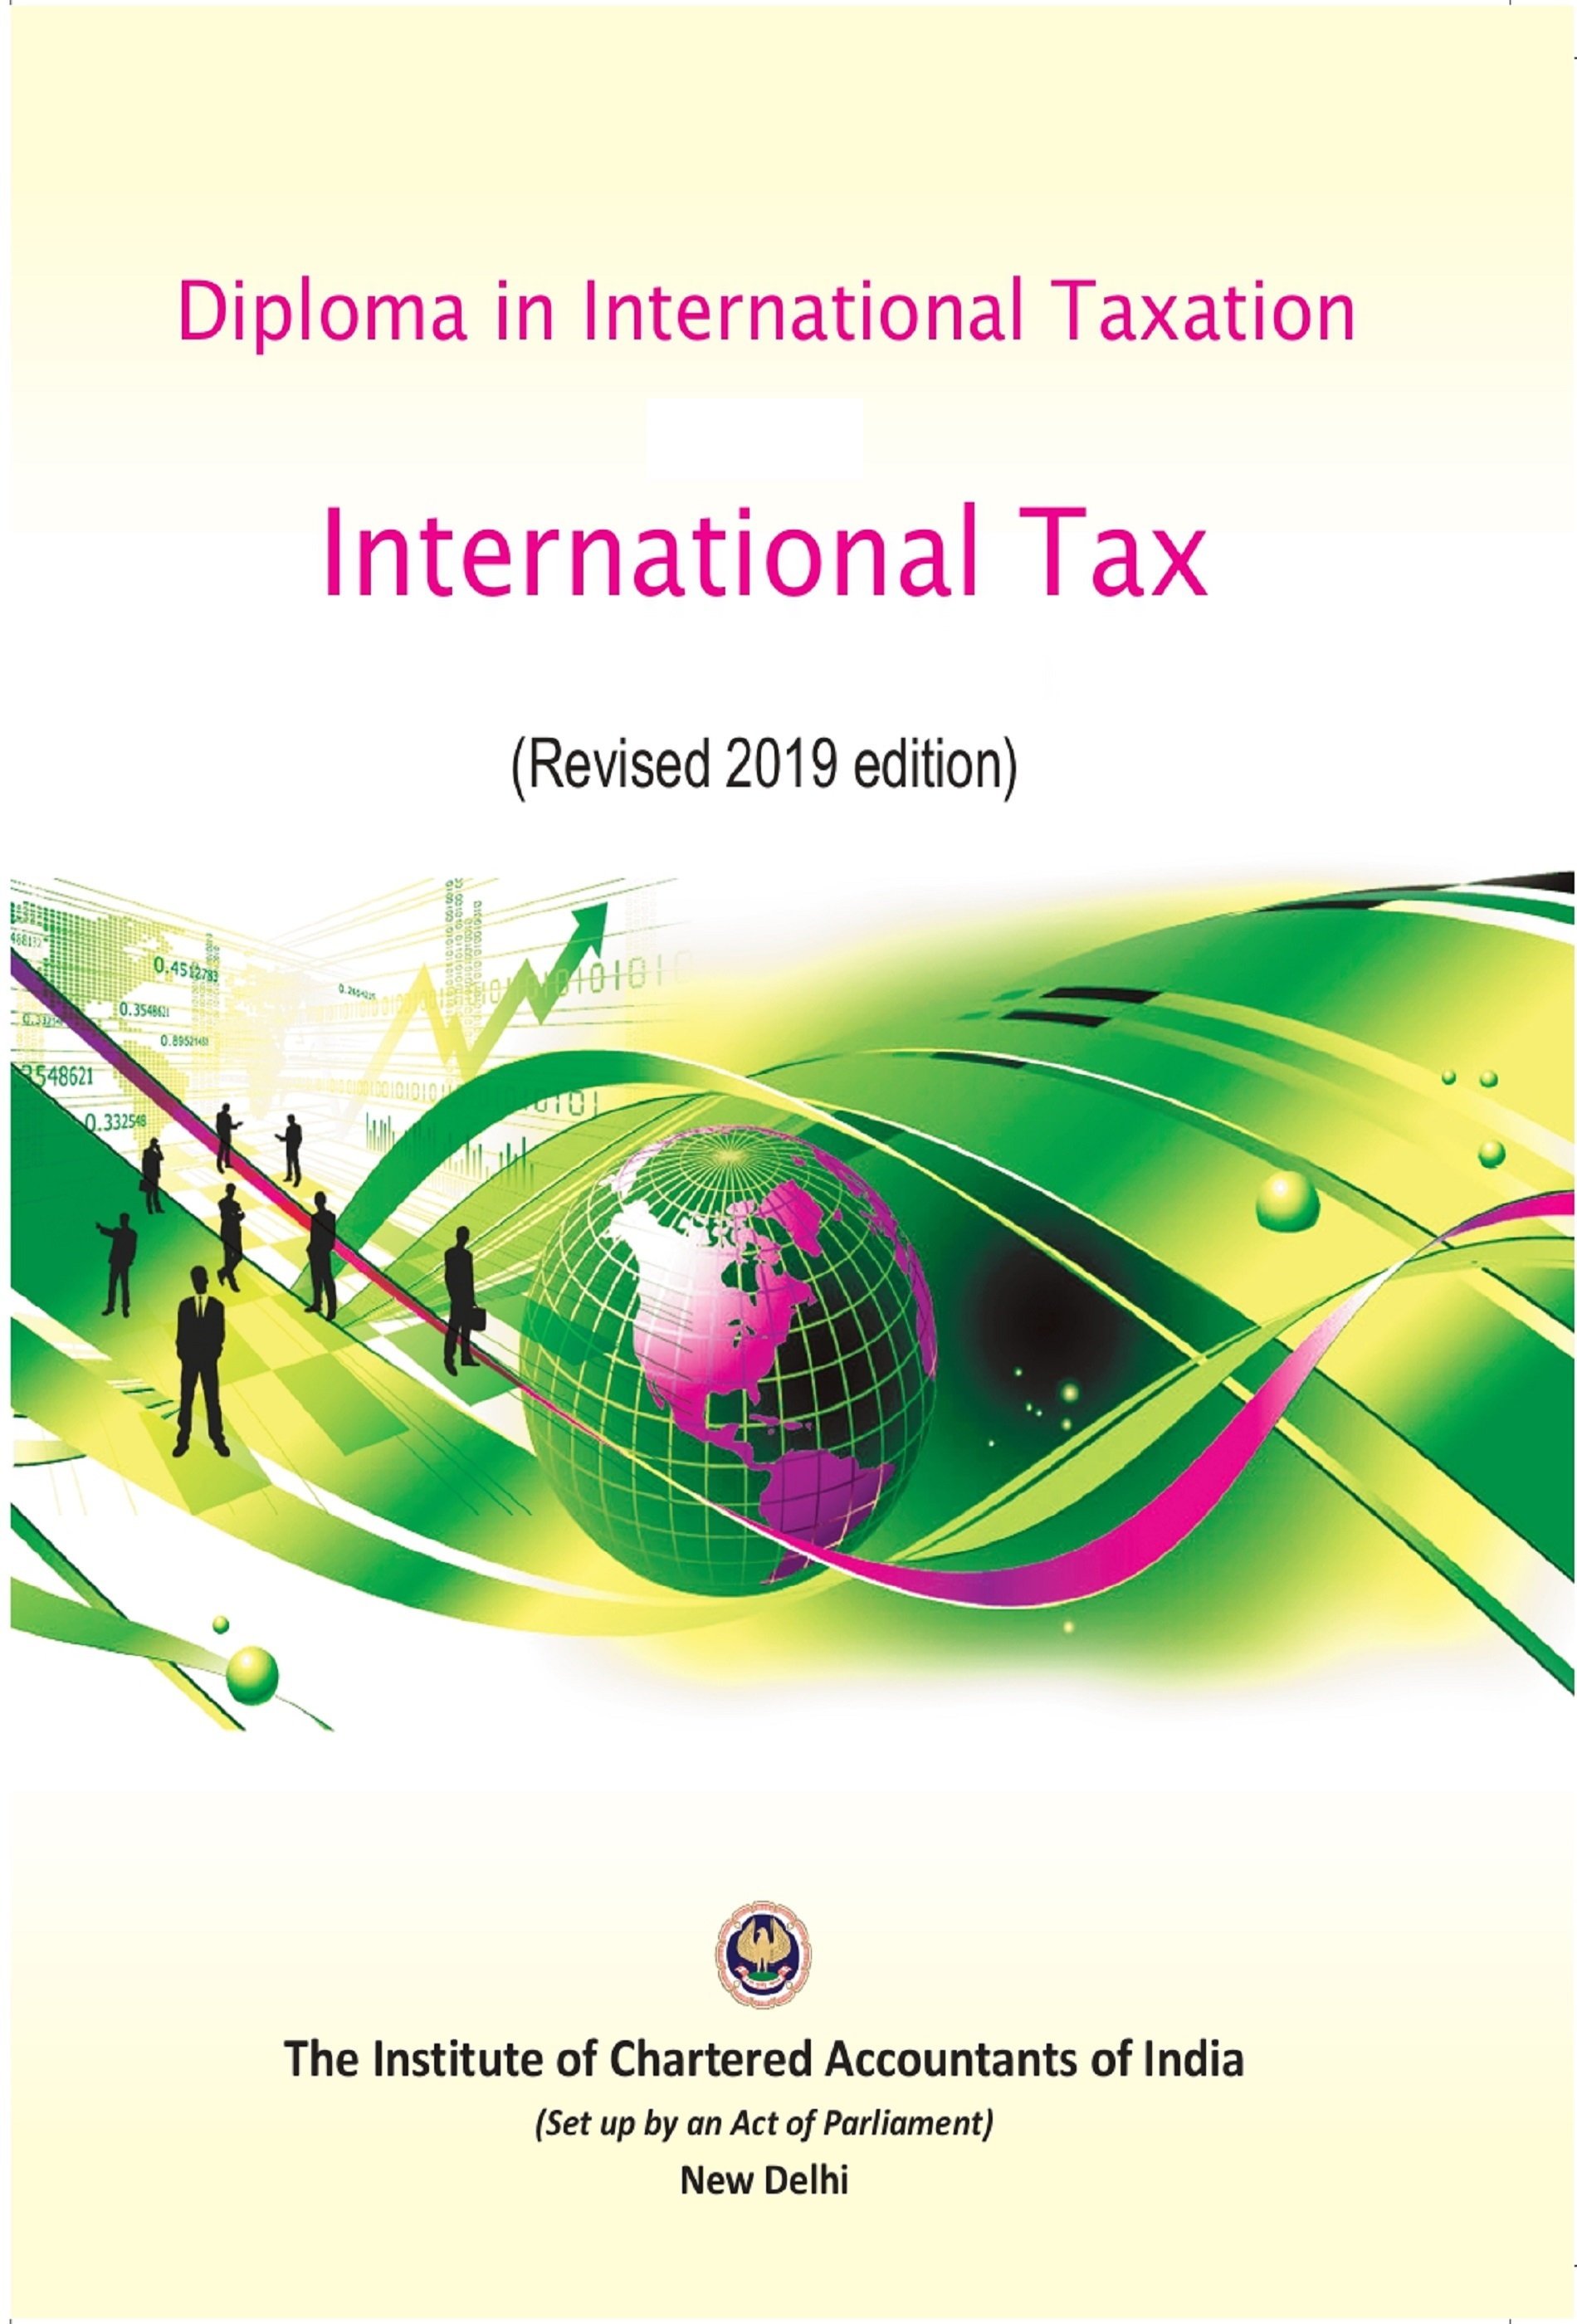 Diploma in International Taxation - Paper-1 International Tax-Transfer Pricing, Paper-2 Practice (Part-I & Part-II) (Revised 2019 Edition)